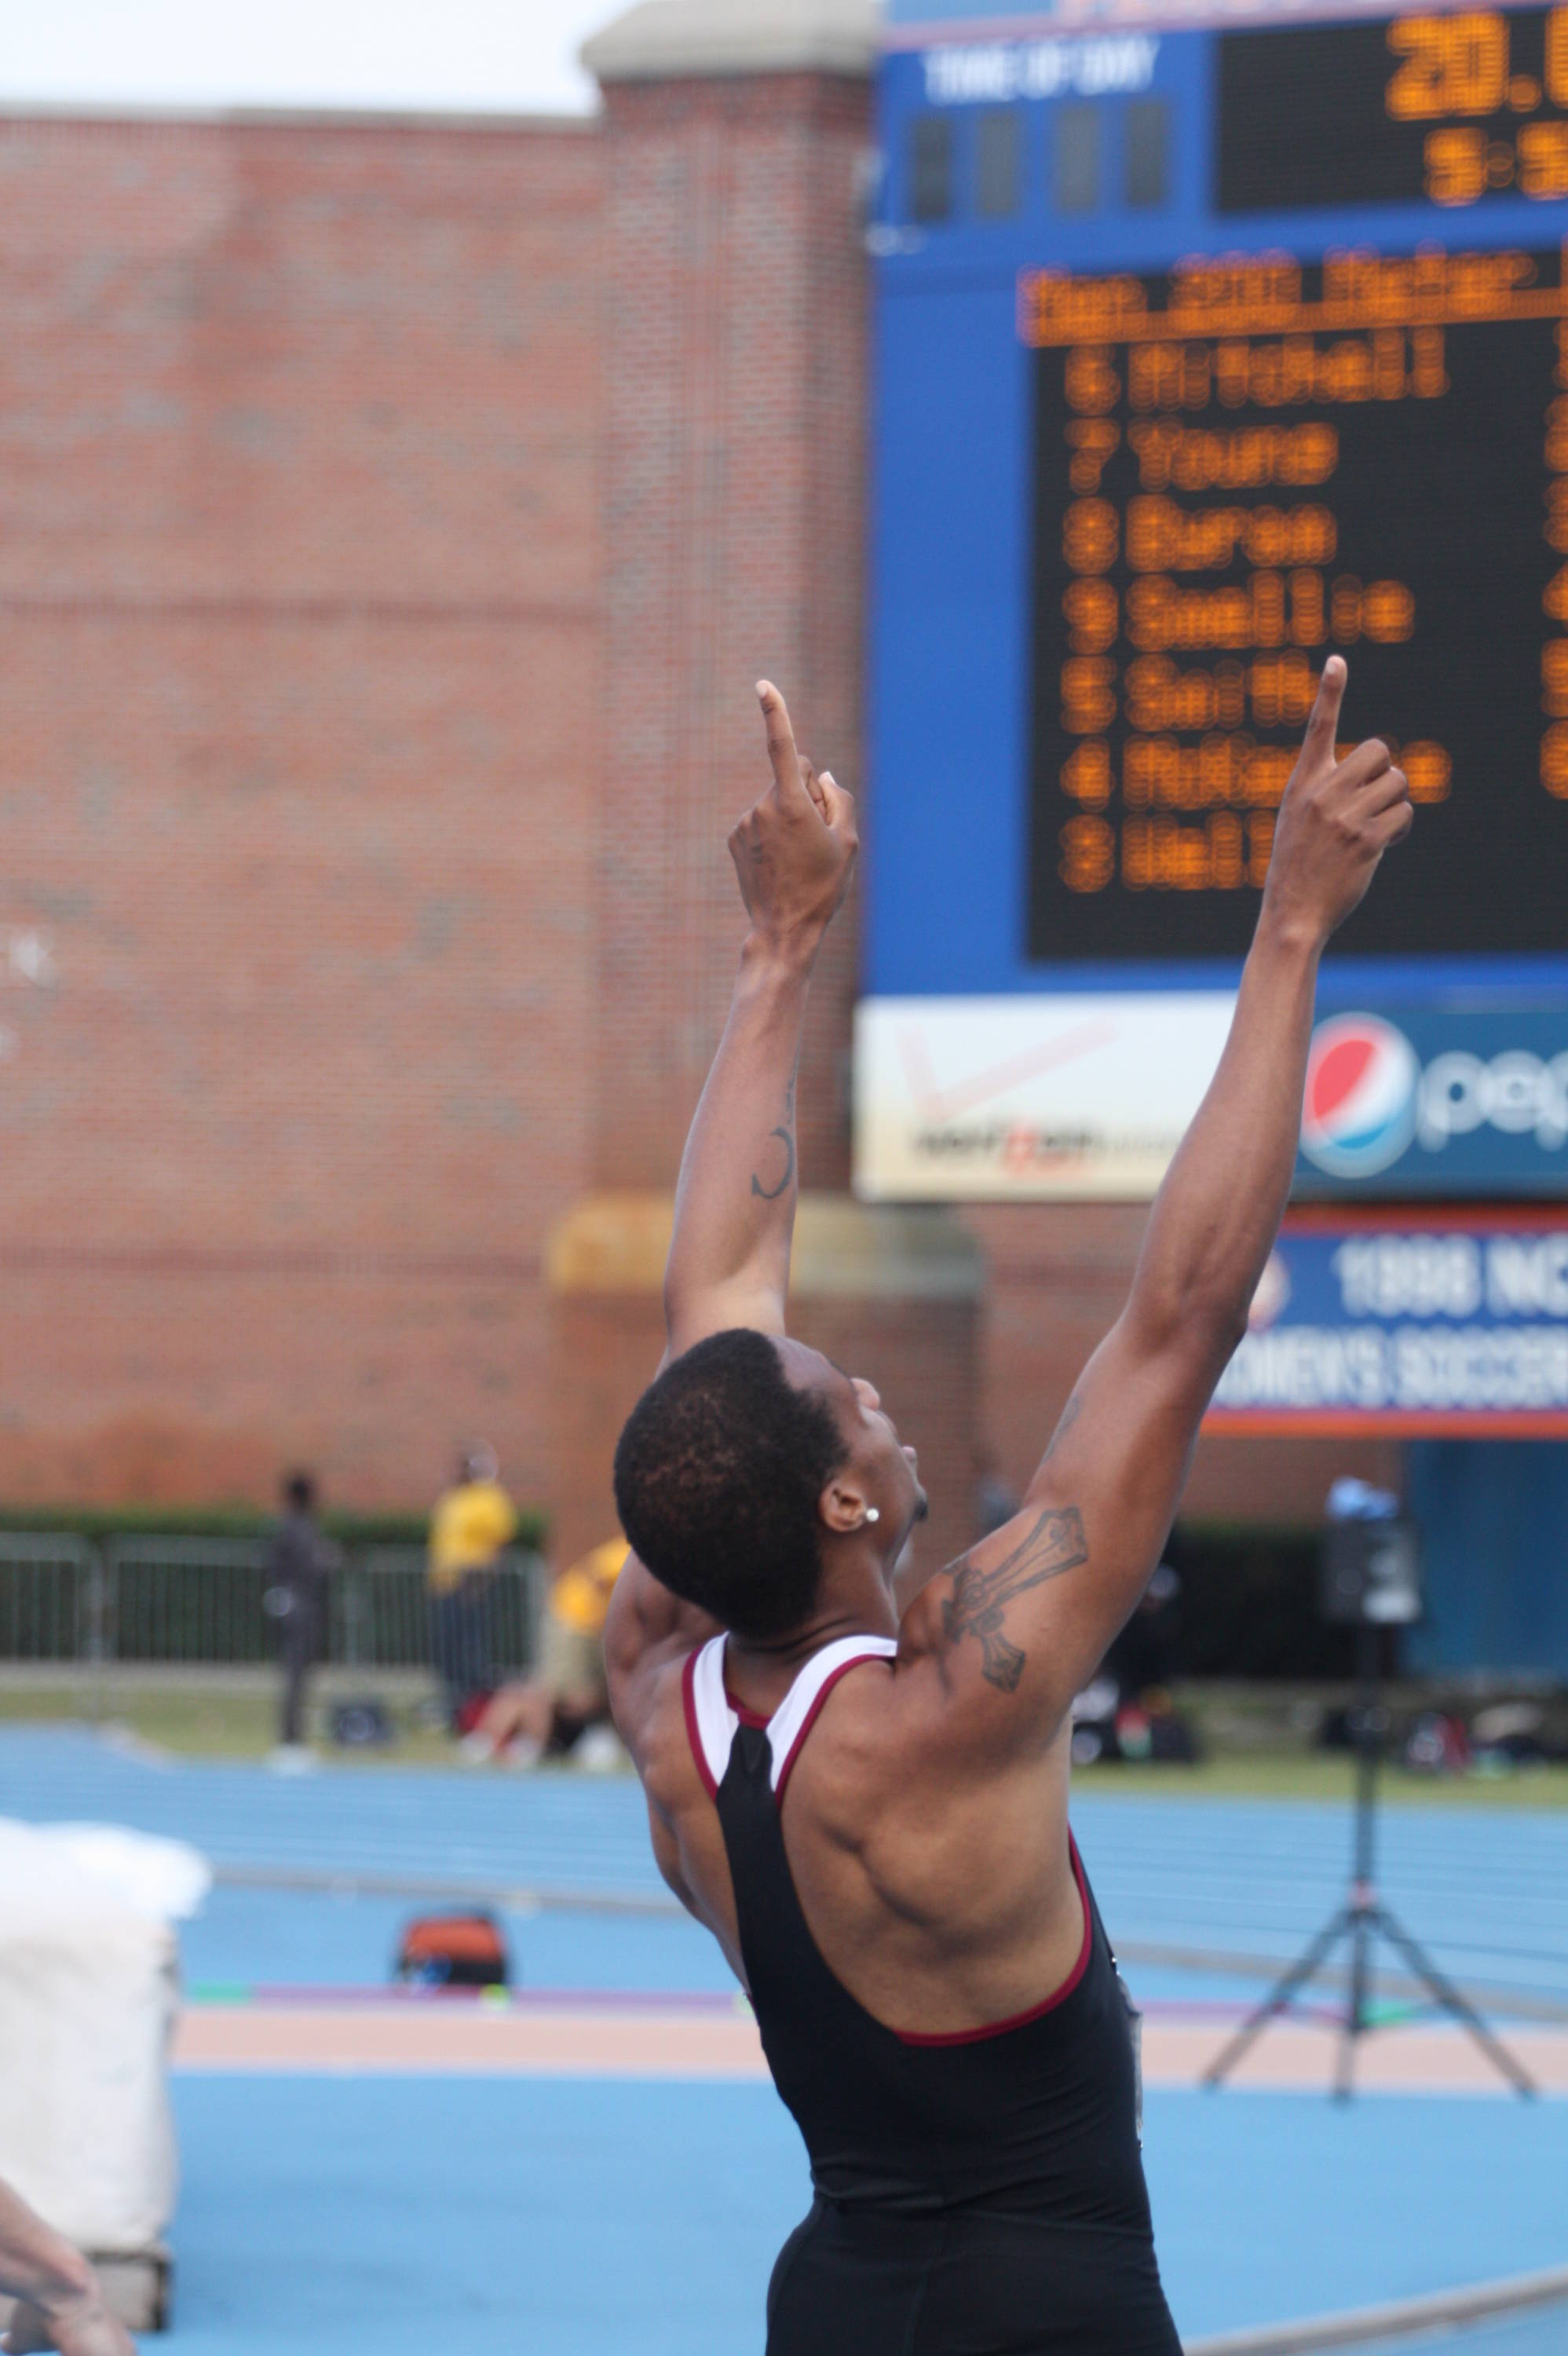 Maurice Mitchell gives praise after winning the 200-meter dash.